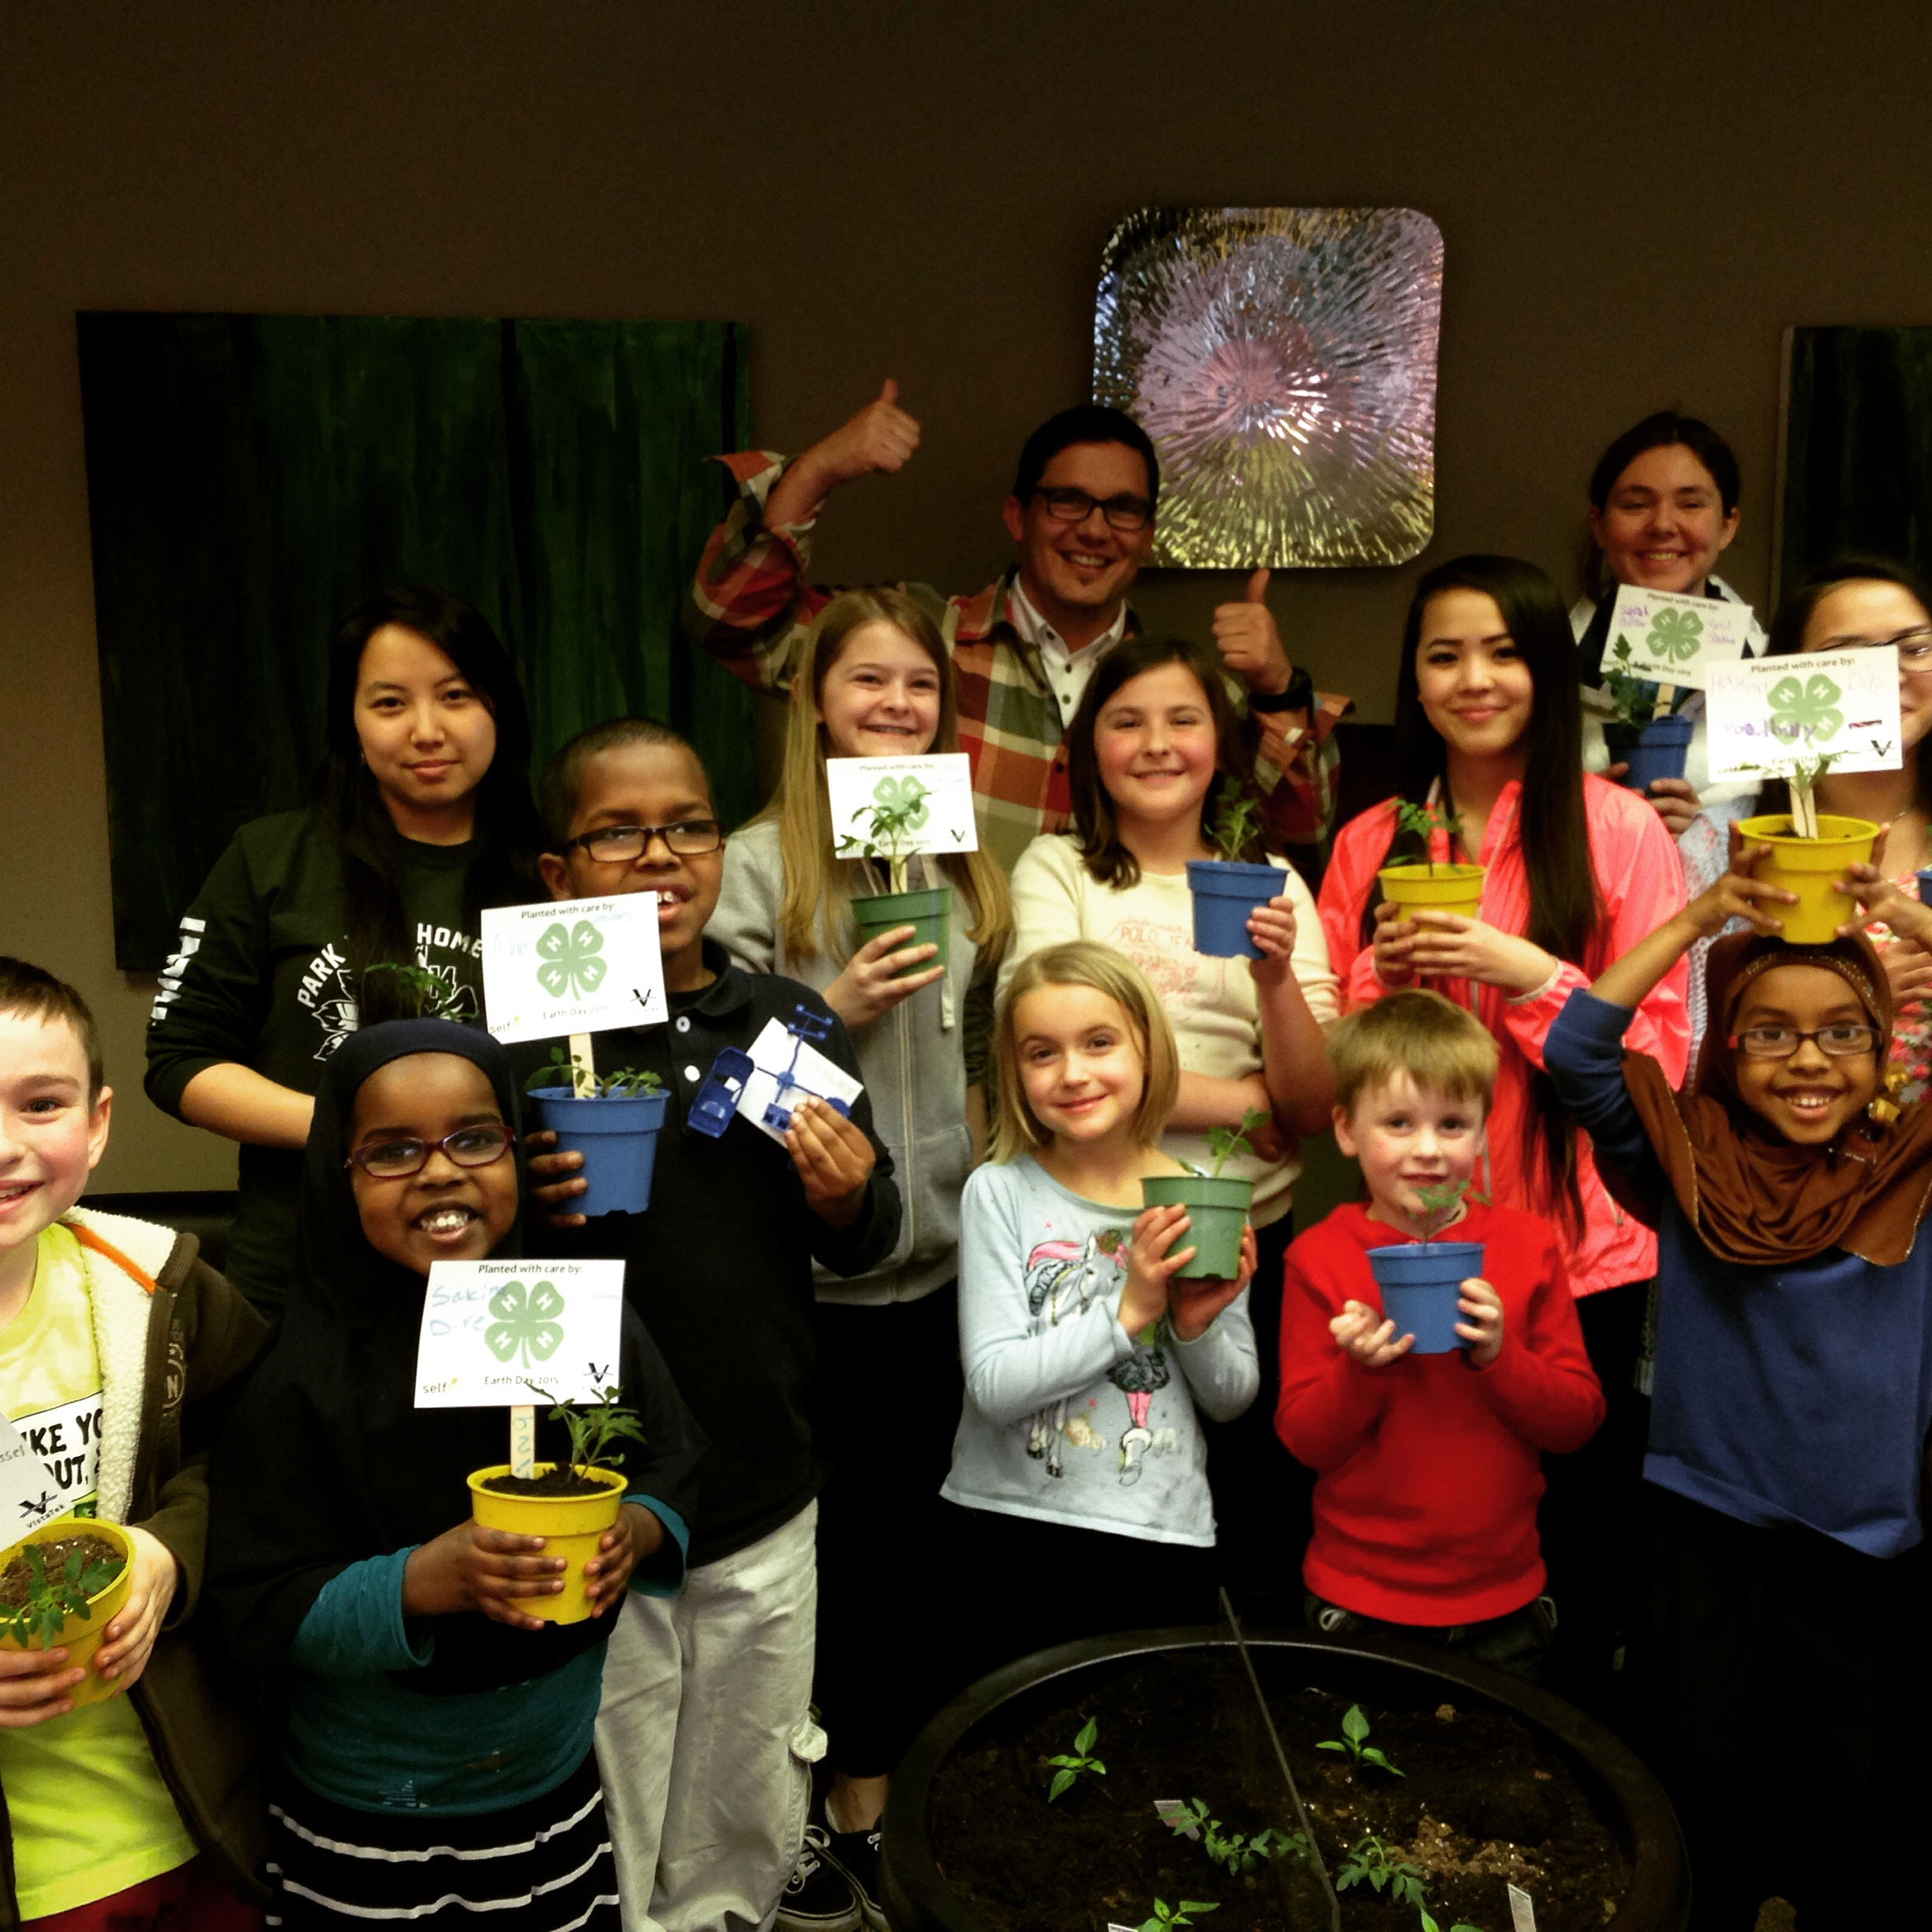 Planting seeds with the local 4-H Club